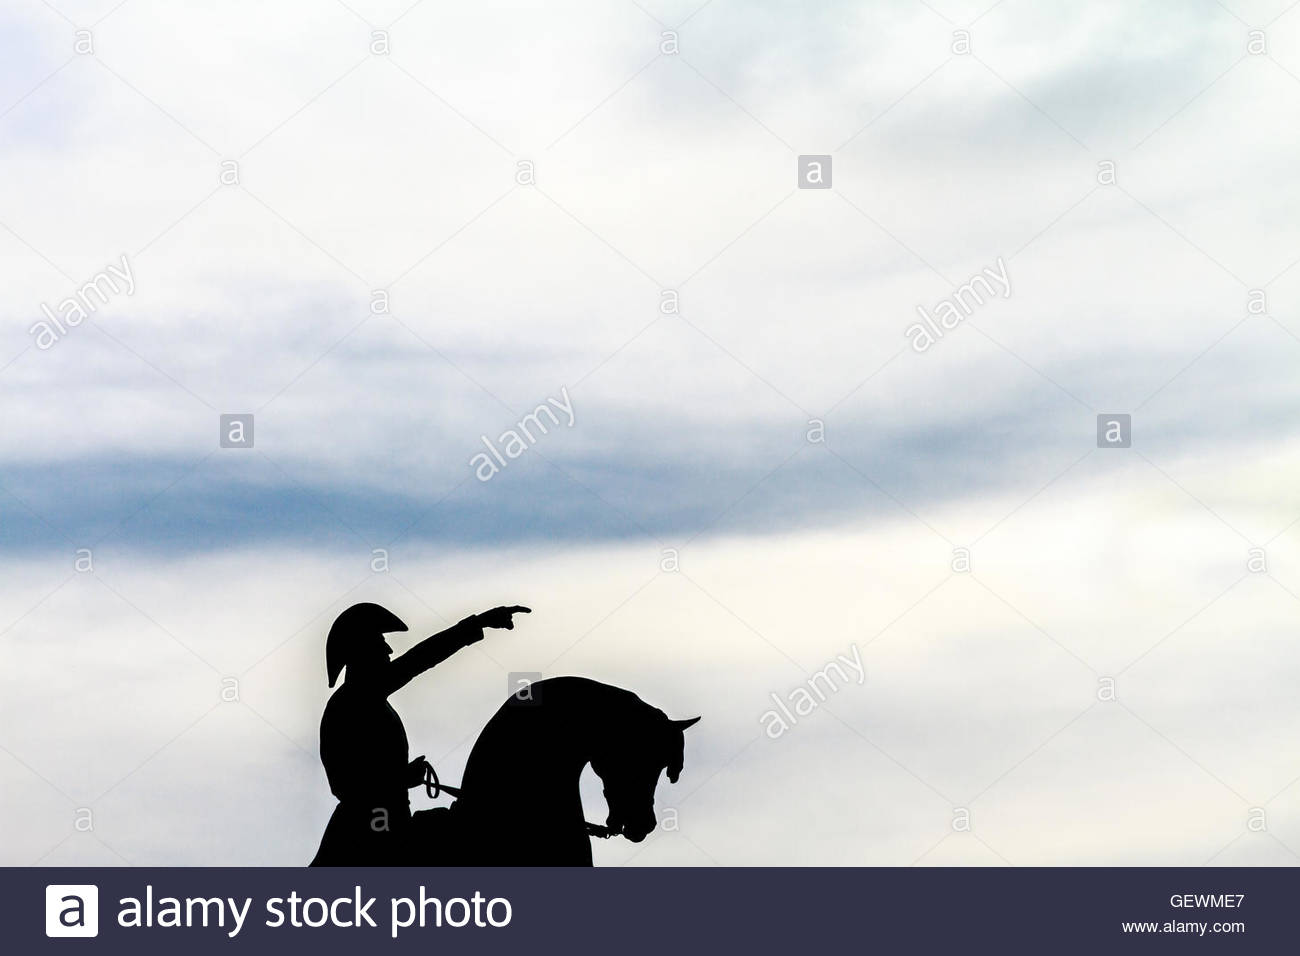 Silhouette of monument to San Martin during sunset in Chascomús, Argentina Stock Photo